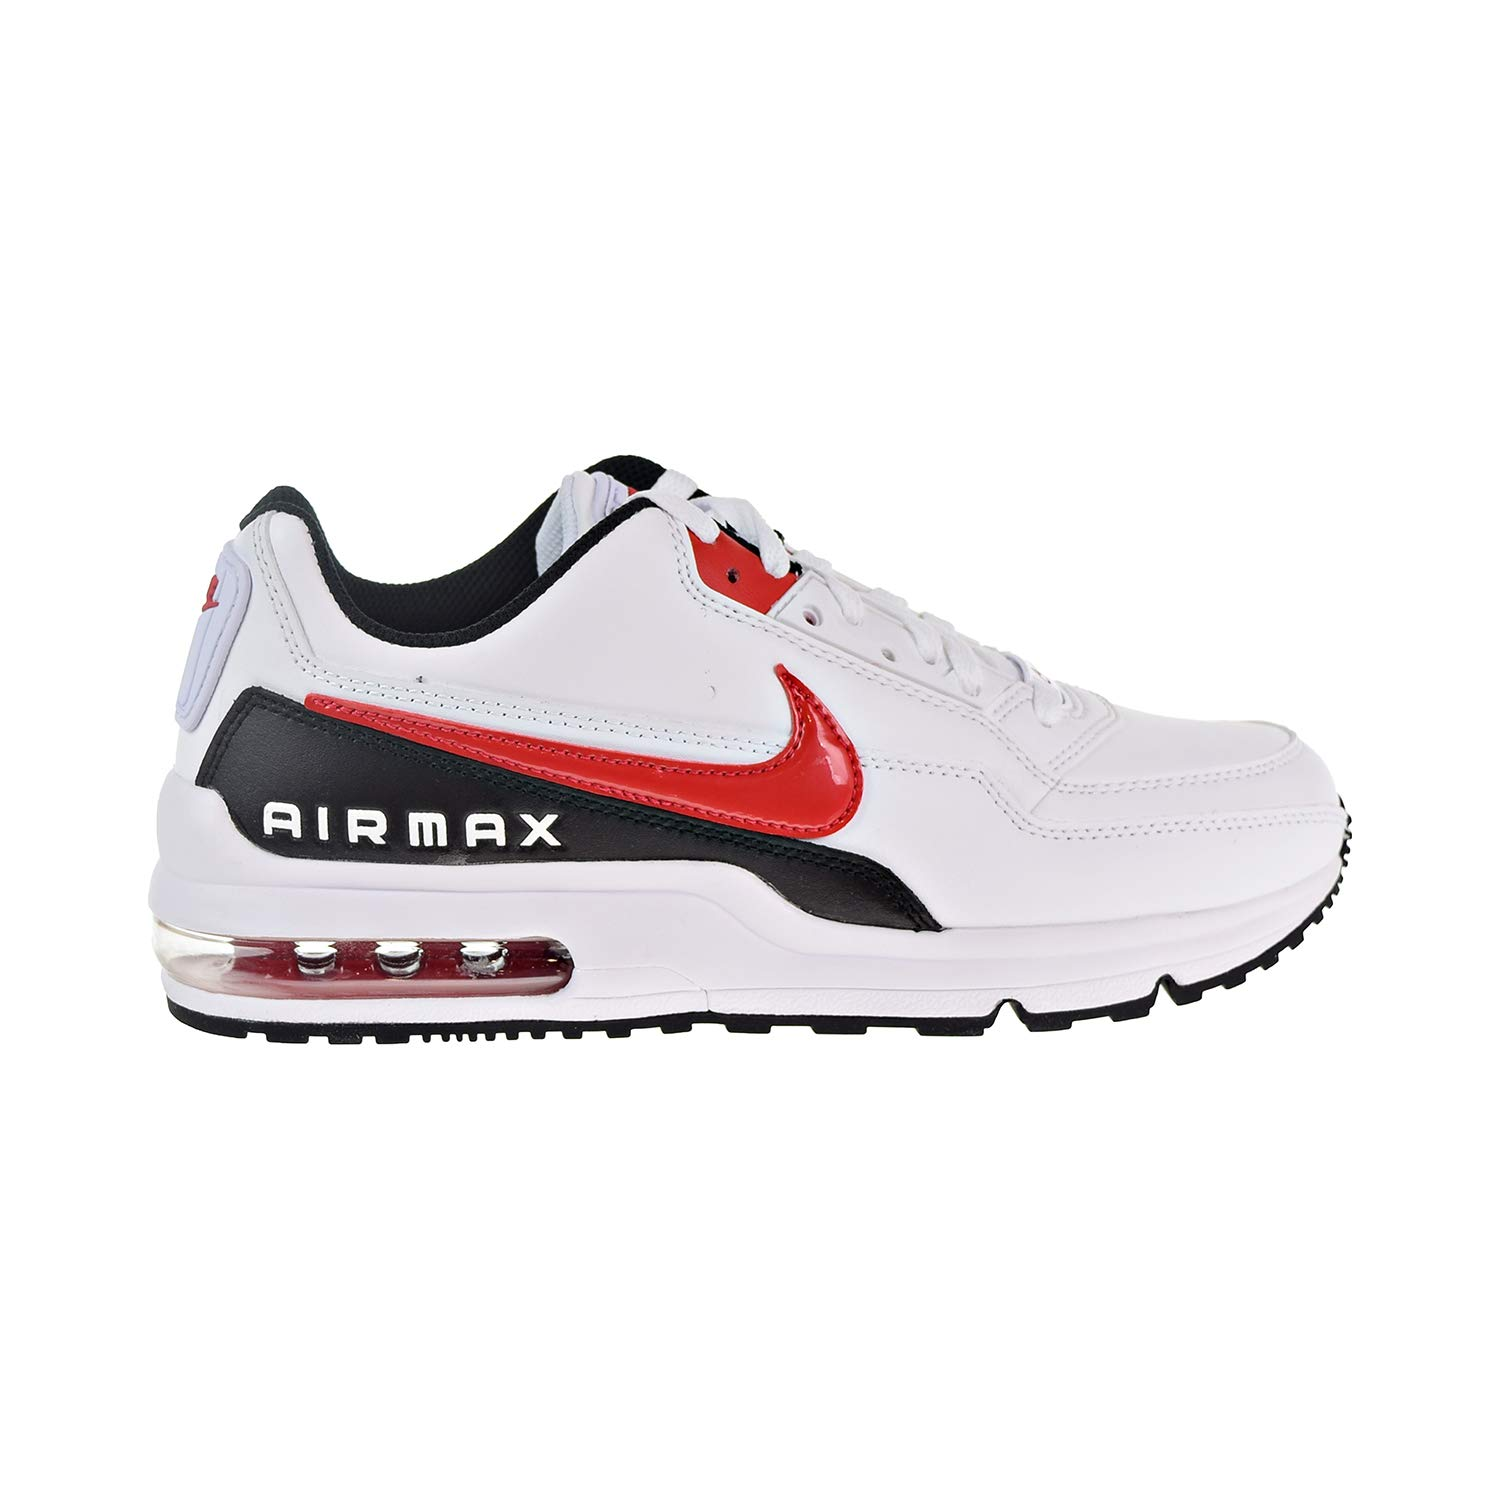 best authentic 998a2 e686c Amazon.com   Nike Air Max LTD 3 Men s Shoes White University Red Black  bv1171-100 (10 D(M) US)   Road Running